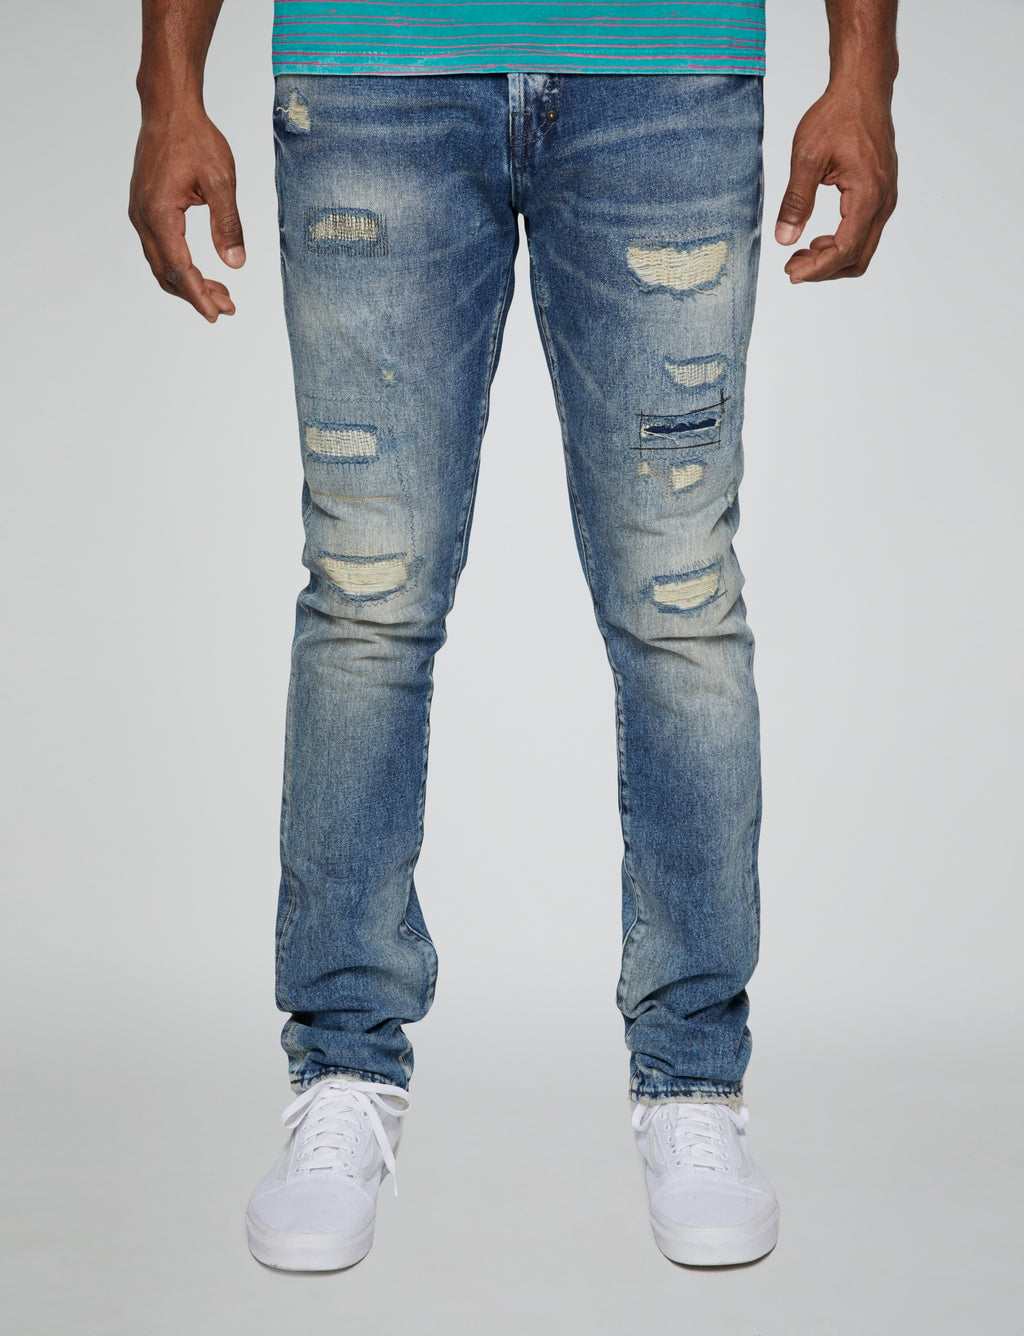 Prps - Demon - Mexico - Jeans - Prps